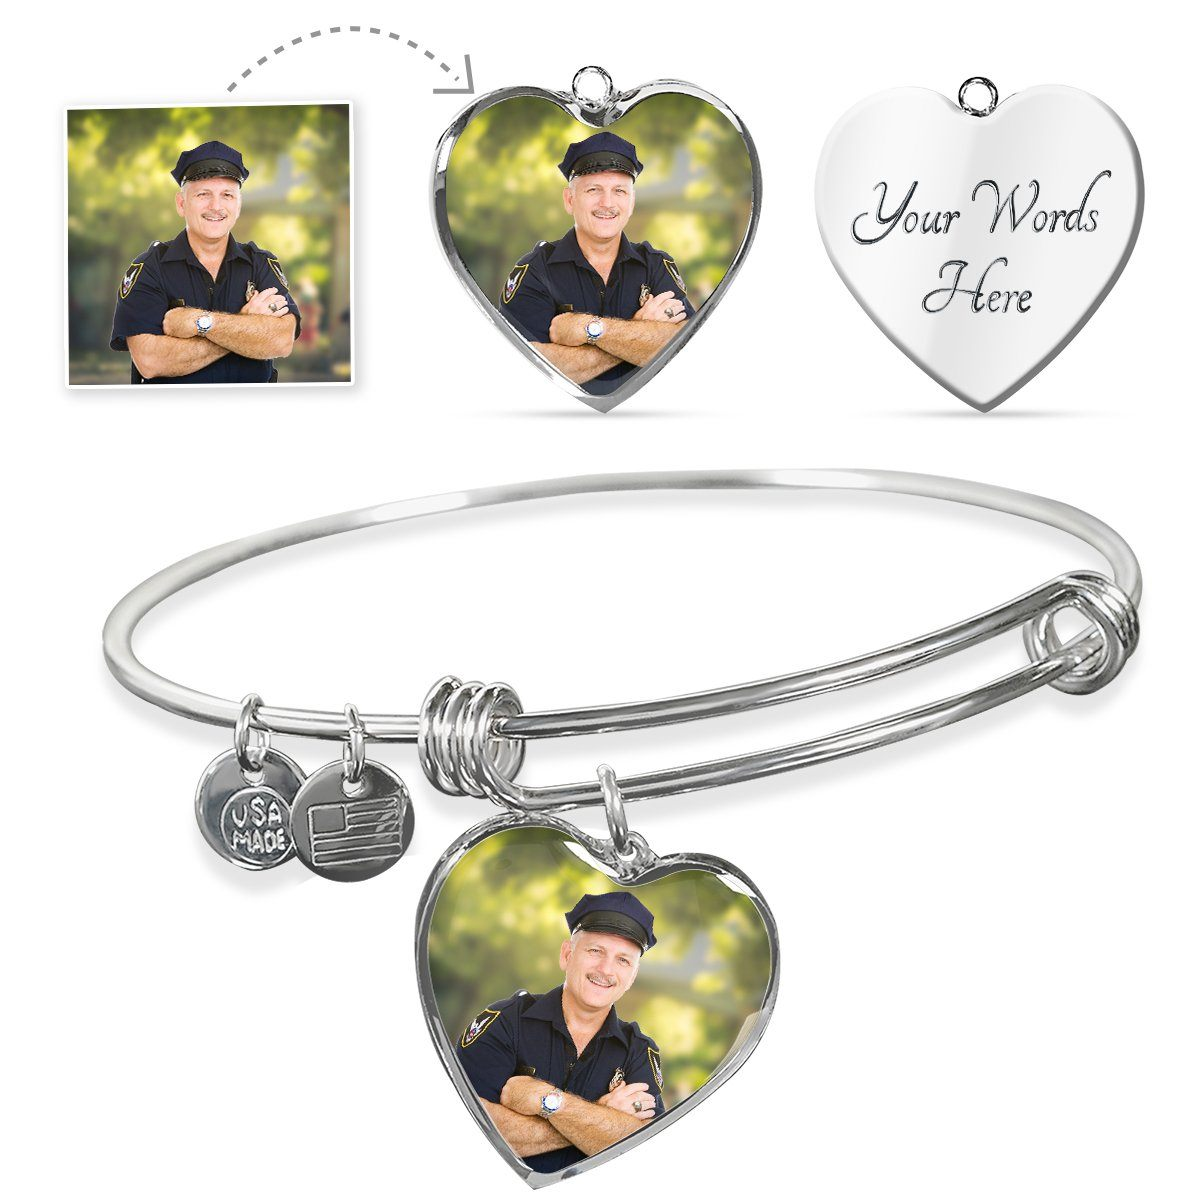 Law Enforcement Personalized Photo Heart Bangle Bracelet - Heroic Defender